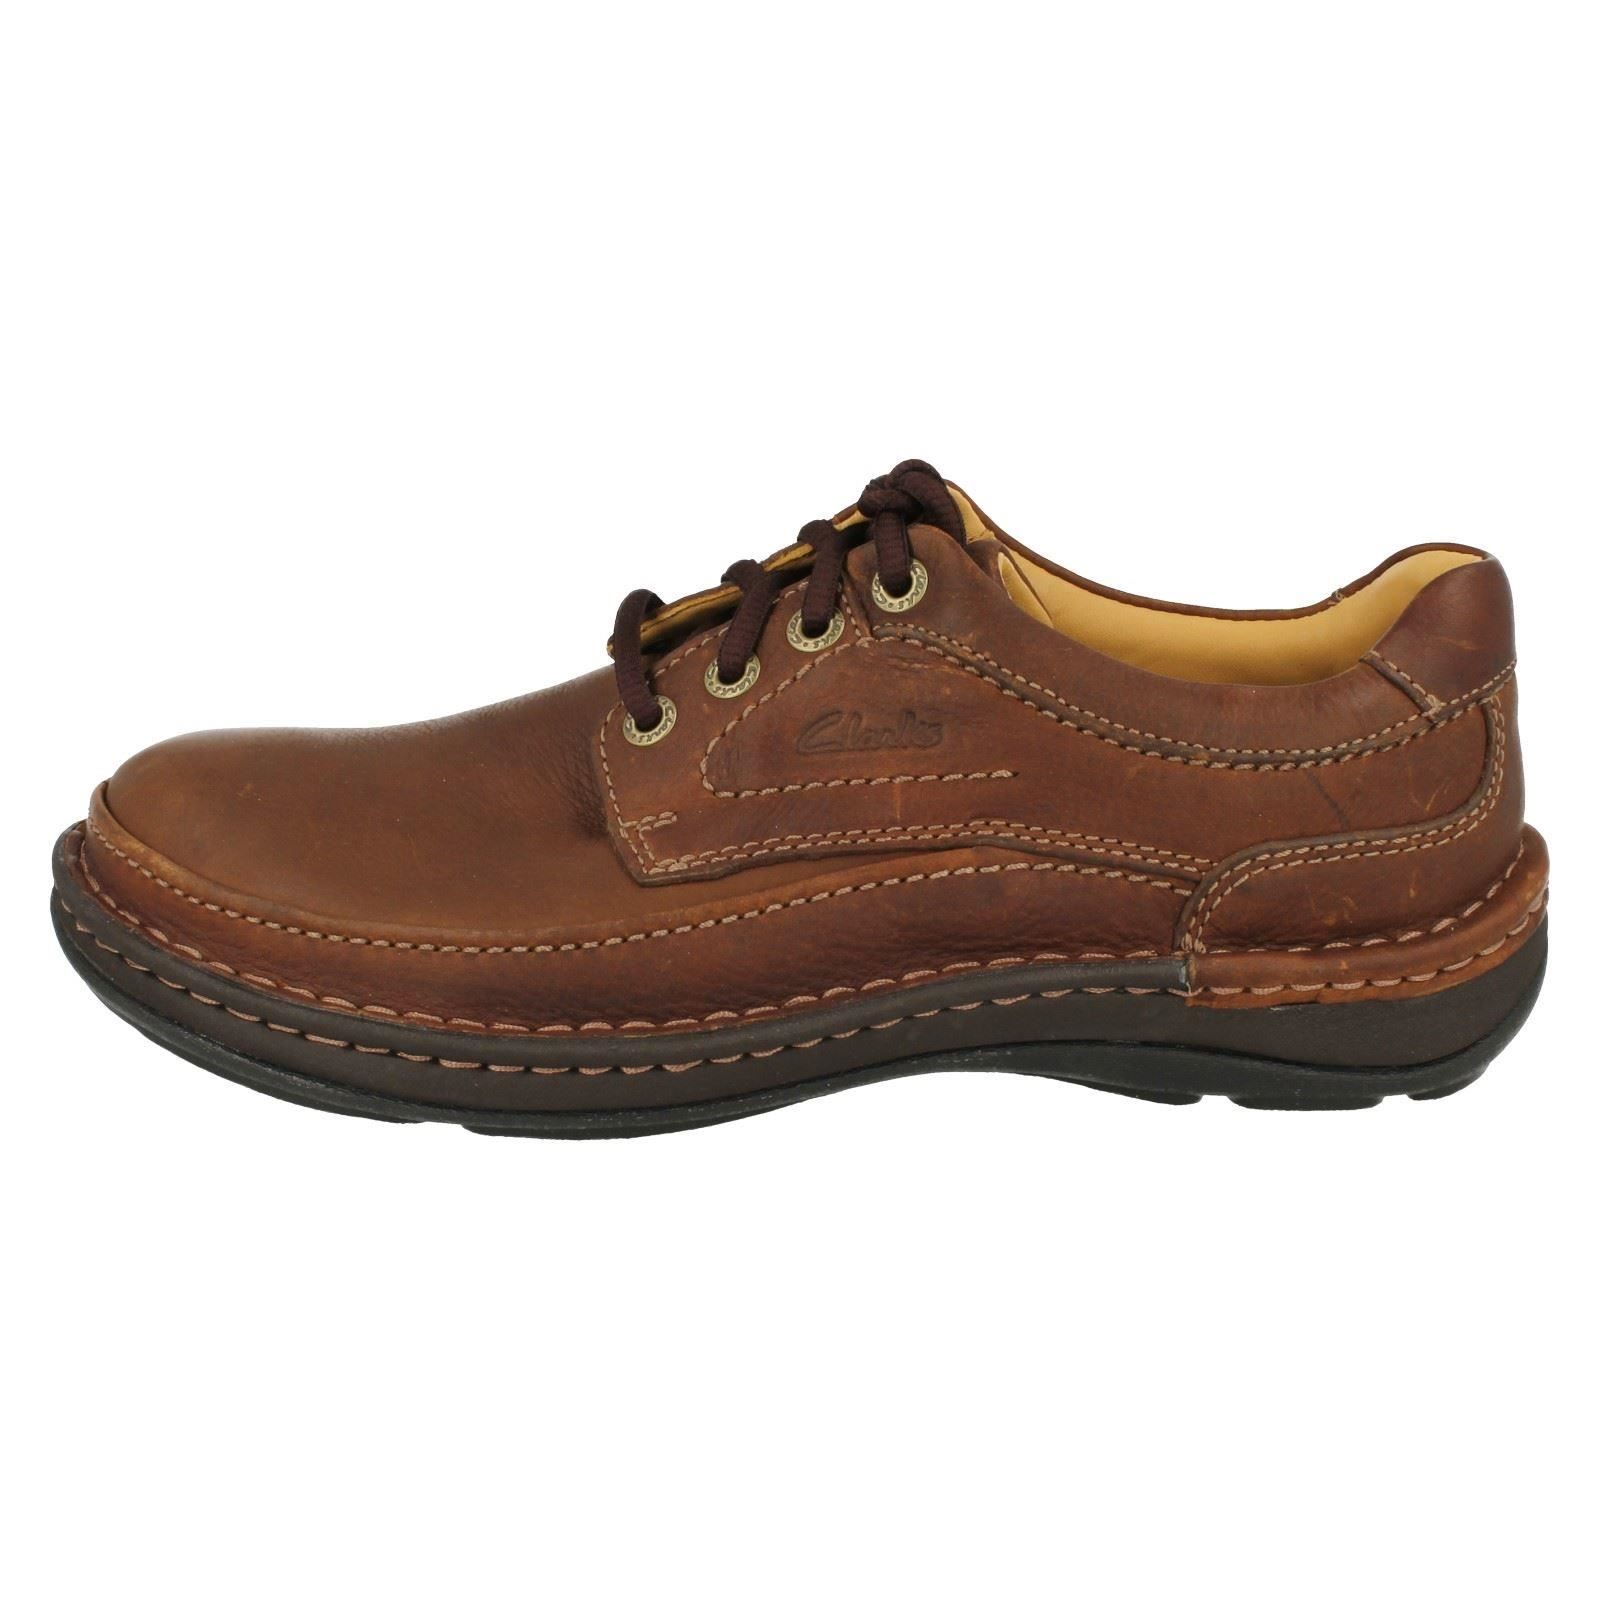 Mens Brown Leather Casual Shoes Uk